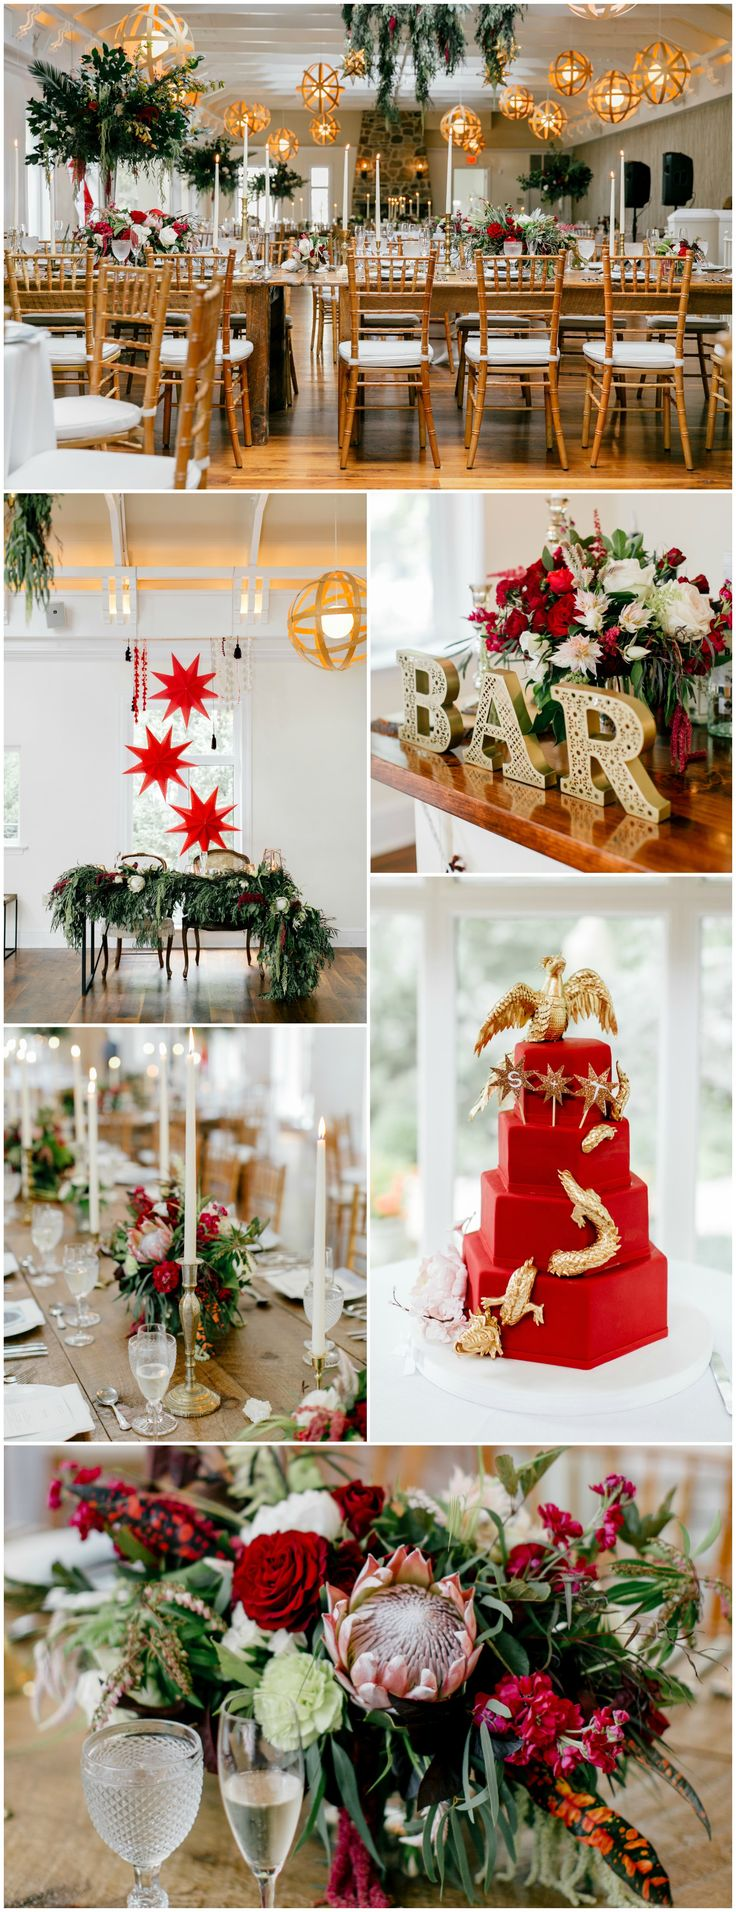 Red wedding reception color palette, red wedding cake, red florals, luscious greenery, candles, bar sign, see the full wedding feature on borrowedandblue.com // Emily Wren Photography